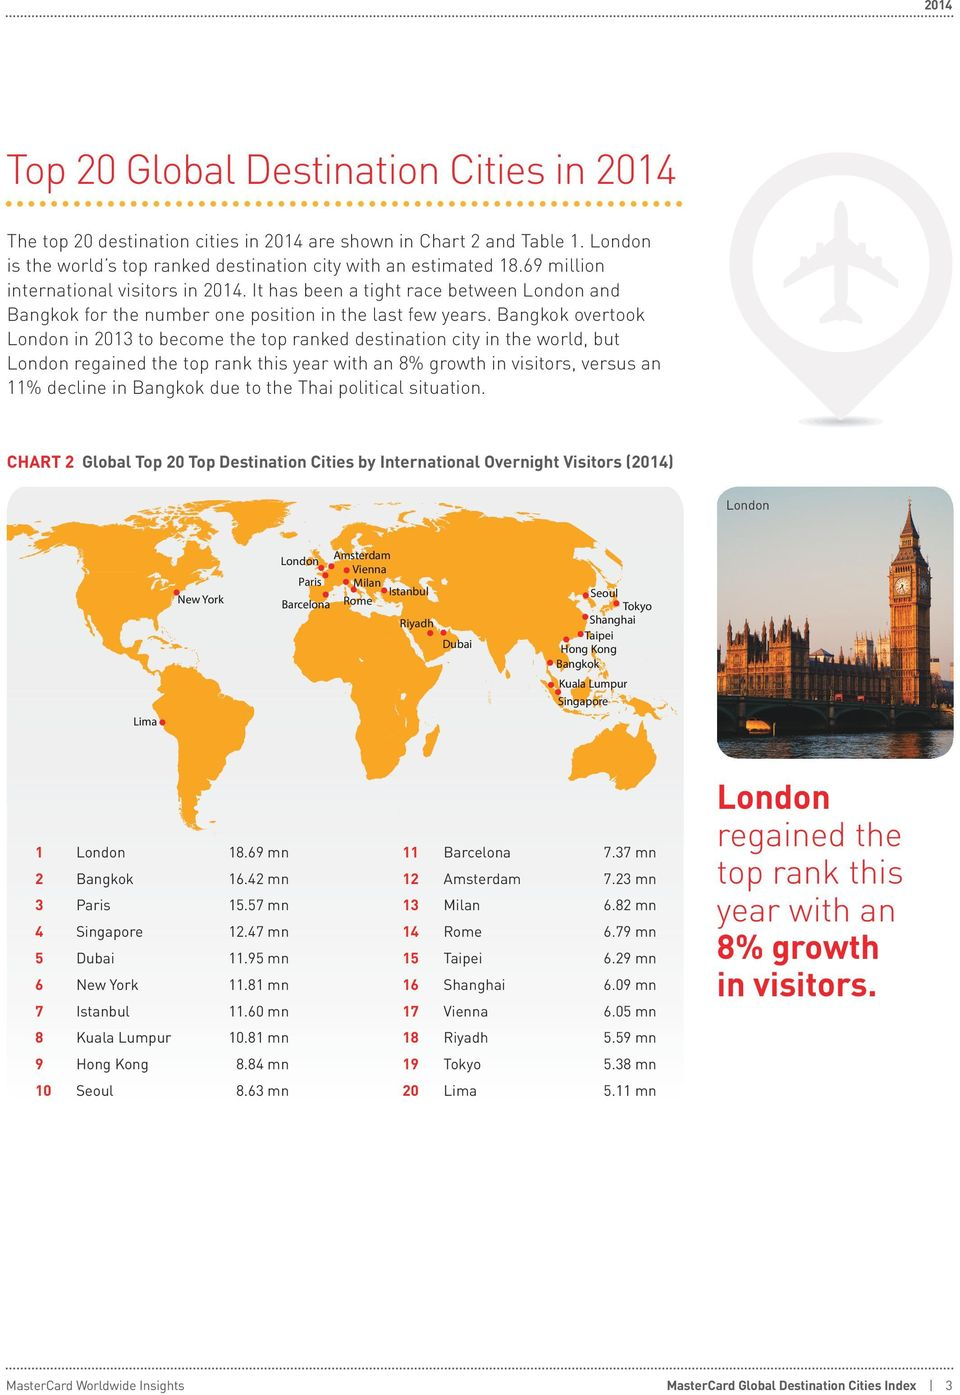 Bangkok overtook London in 2013 to become the top ranked destination city in the world, but London regained the top rank this year with an 8% growth in visitors, versus an 11% decline in Bangkok due